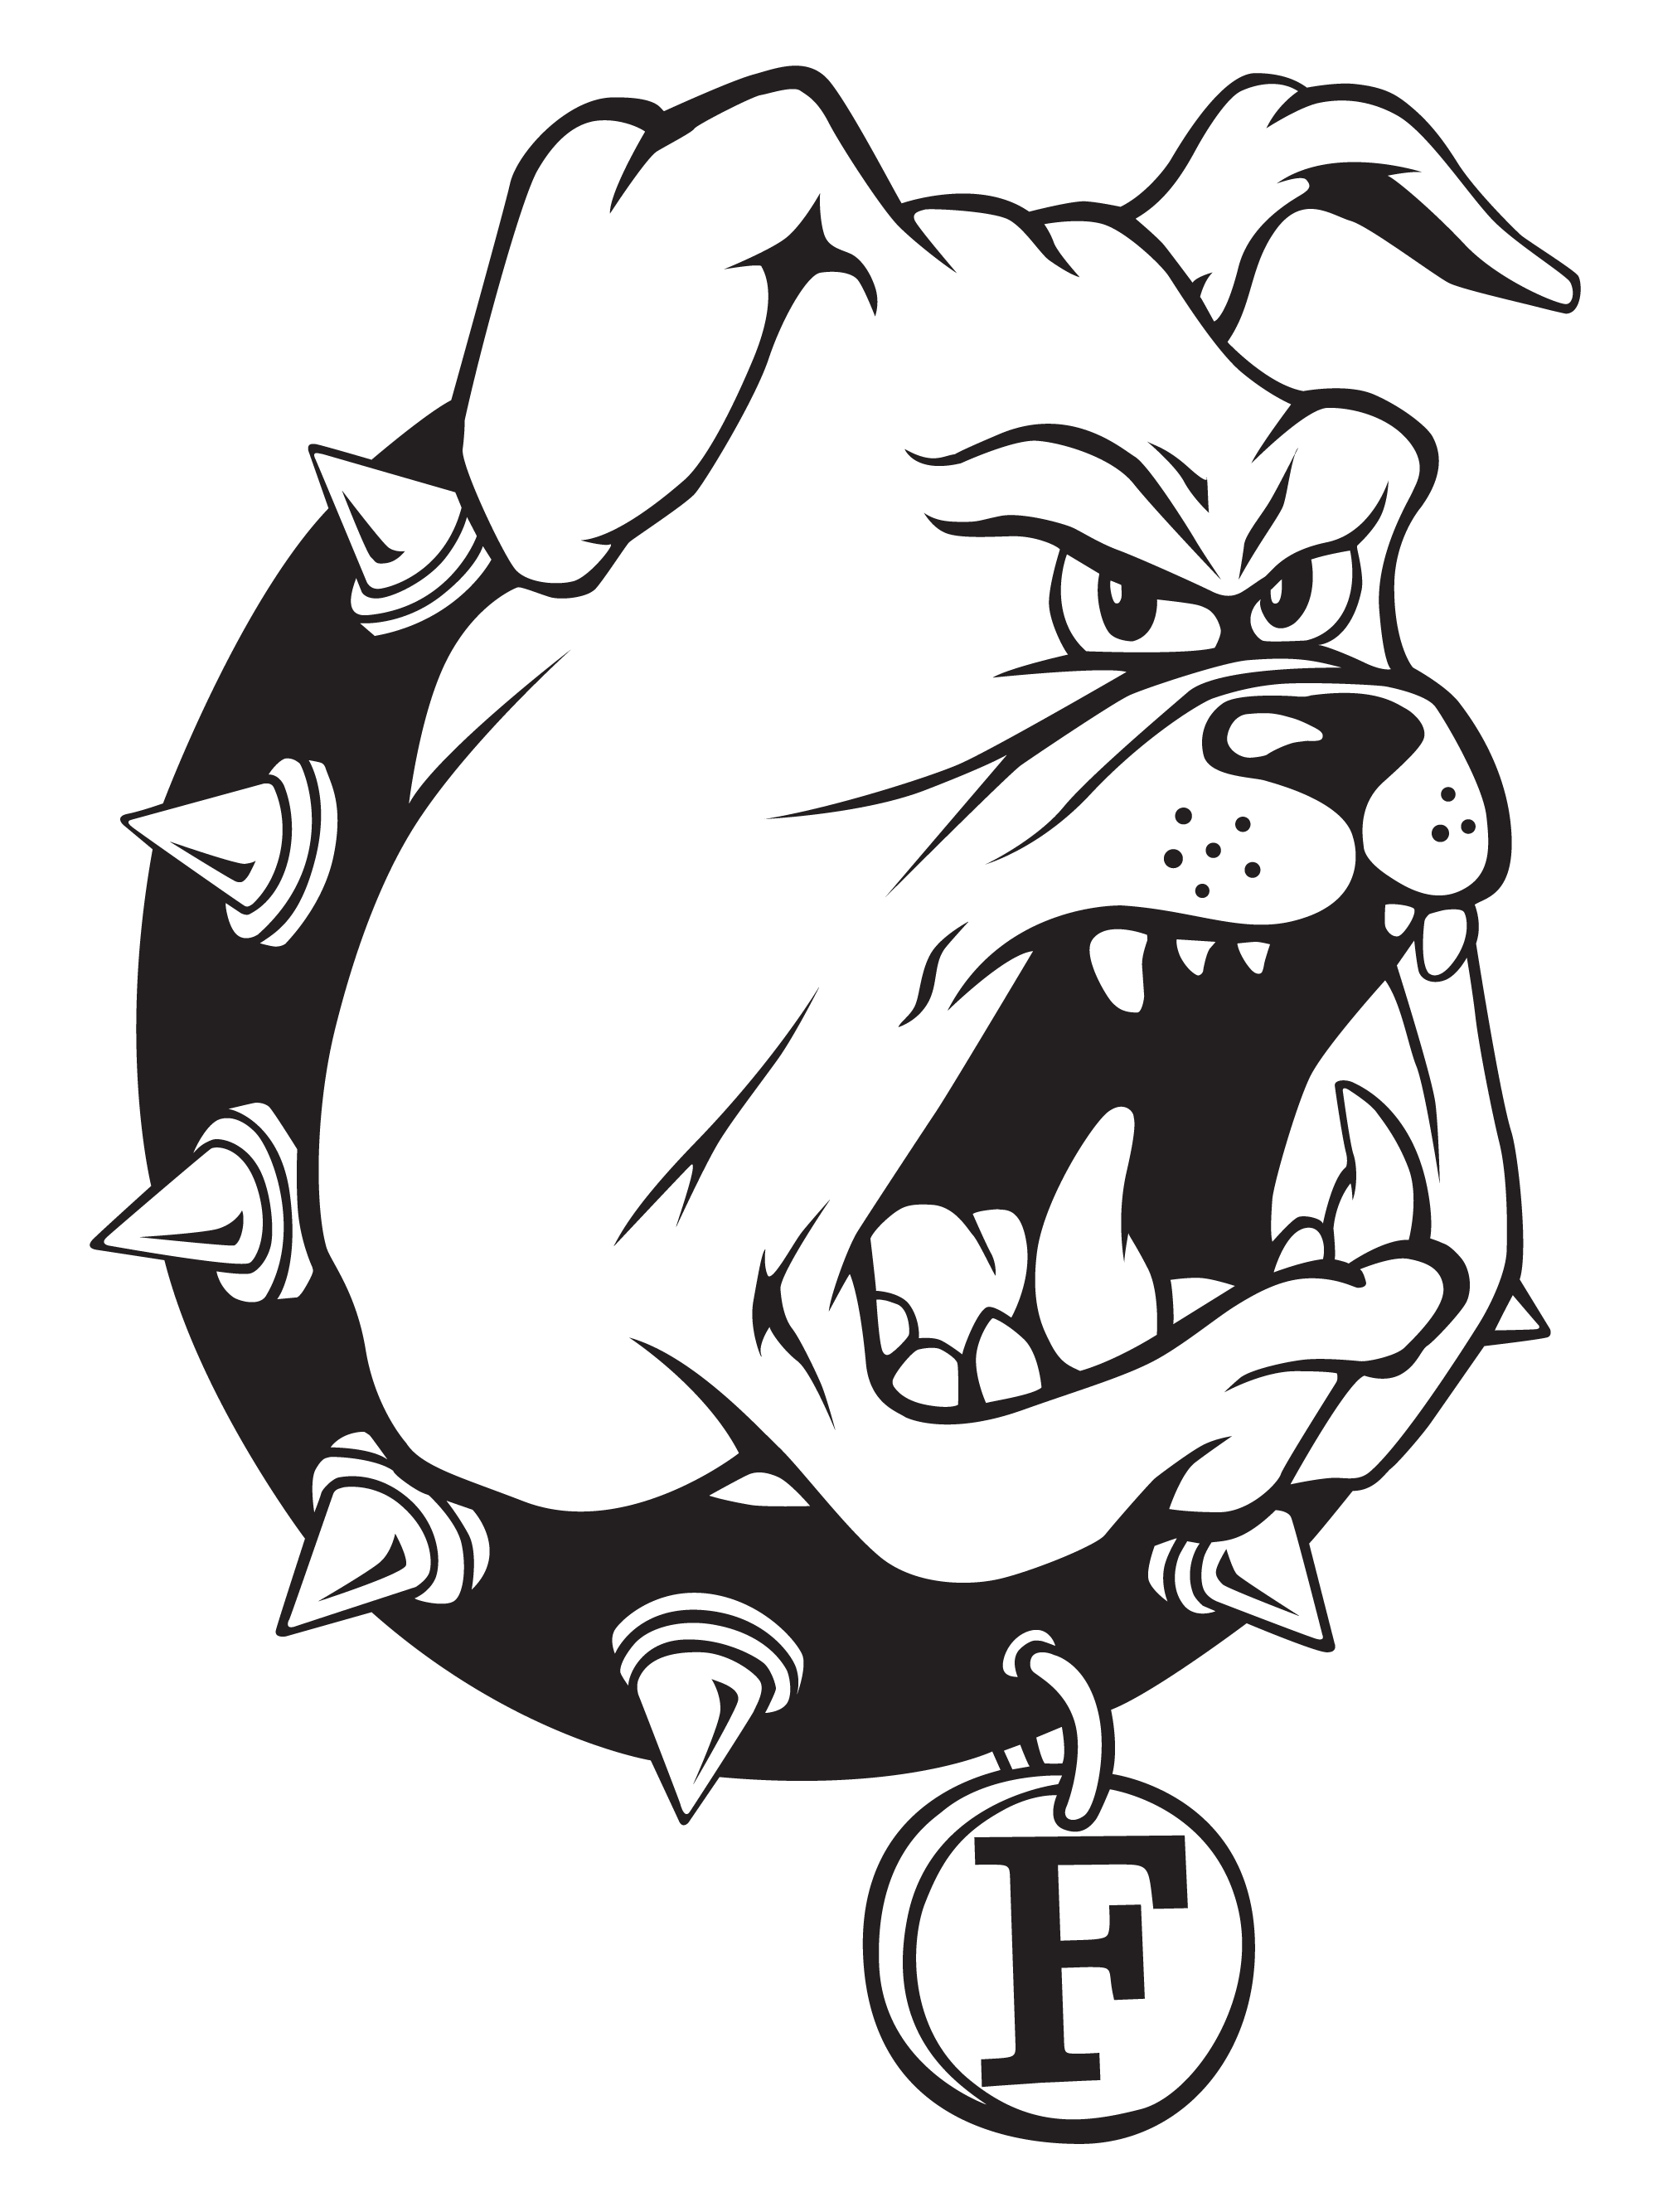 royalty free Logos ferris state university. Vector bulldog black and white